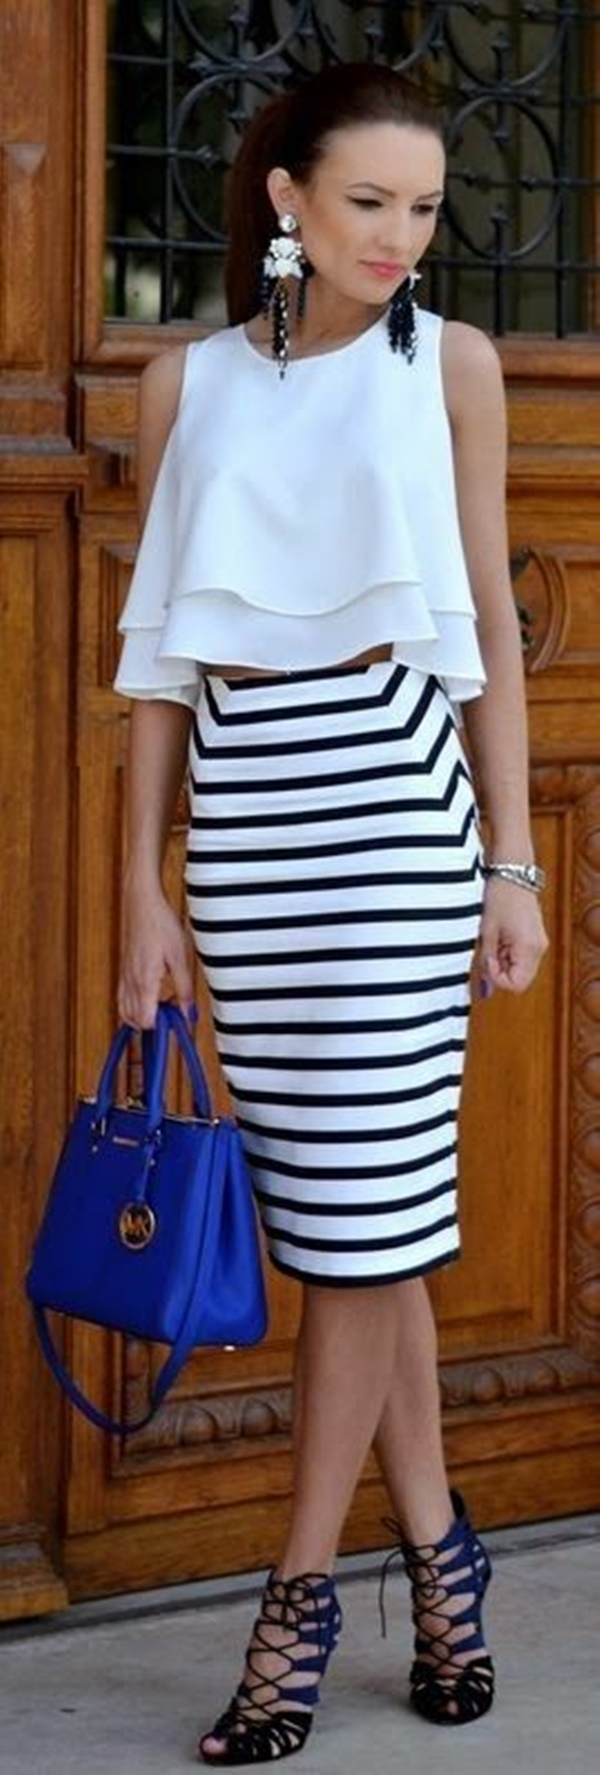 striped skirt outfits (26)